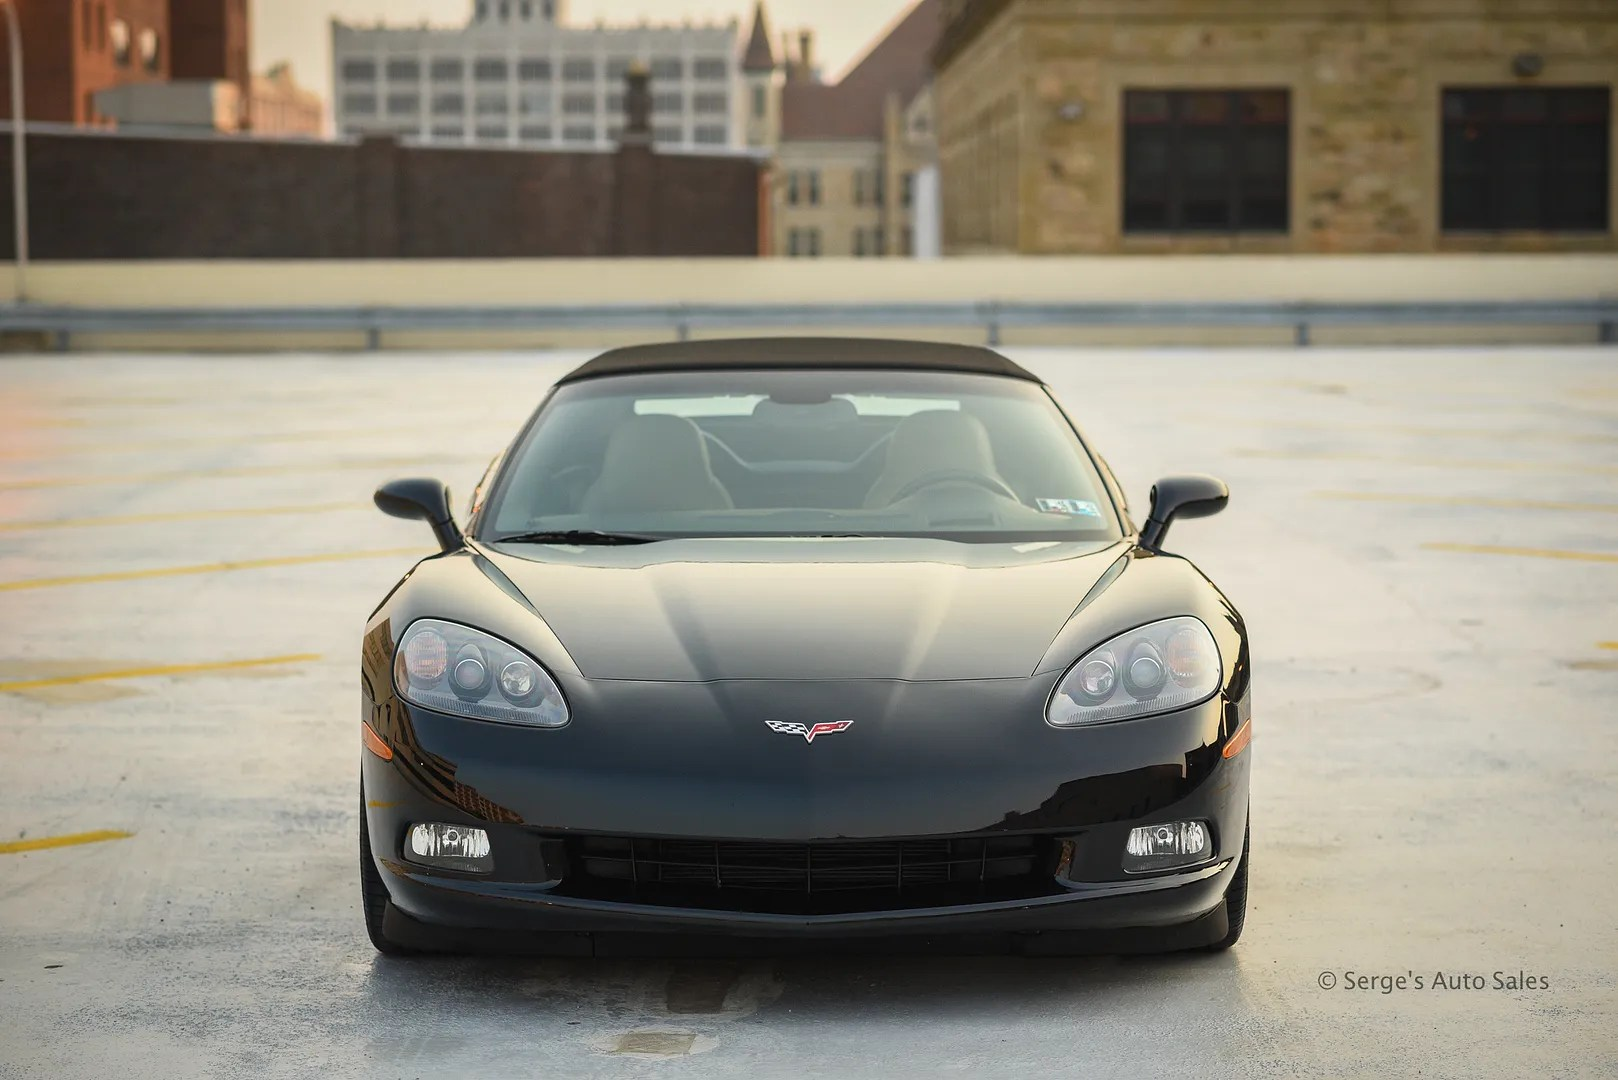 photo 2005-C6-Corvette-Convertible-For-Sale-Scranton-Serges-Auto-Sales-dealer--14_zpsmiju2wym.jpg